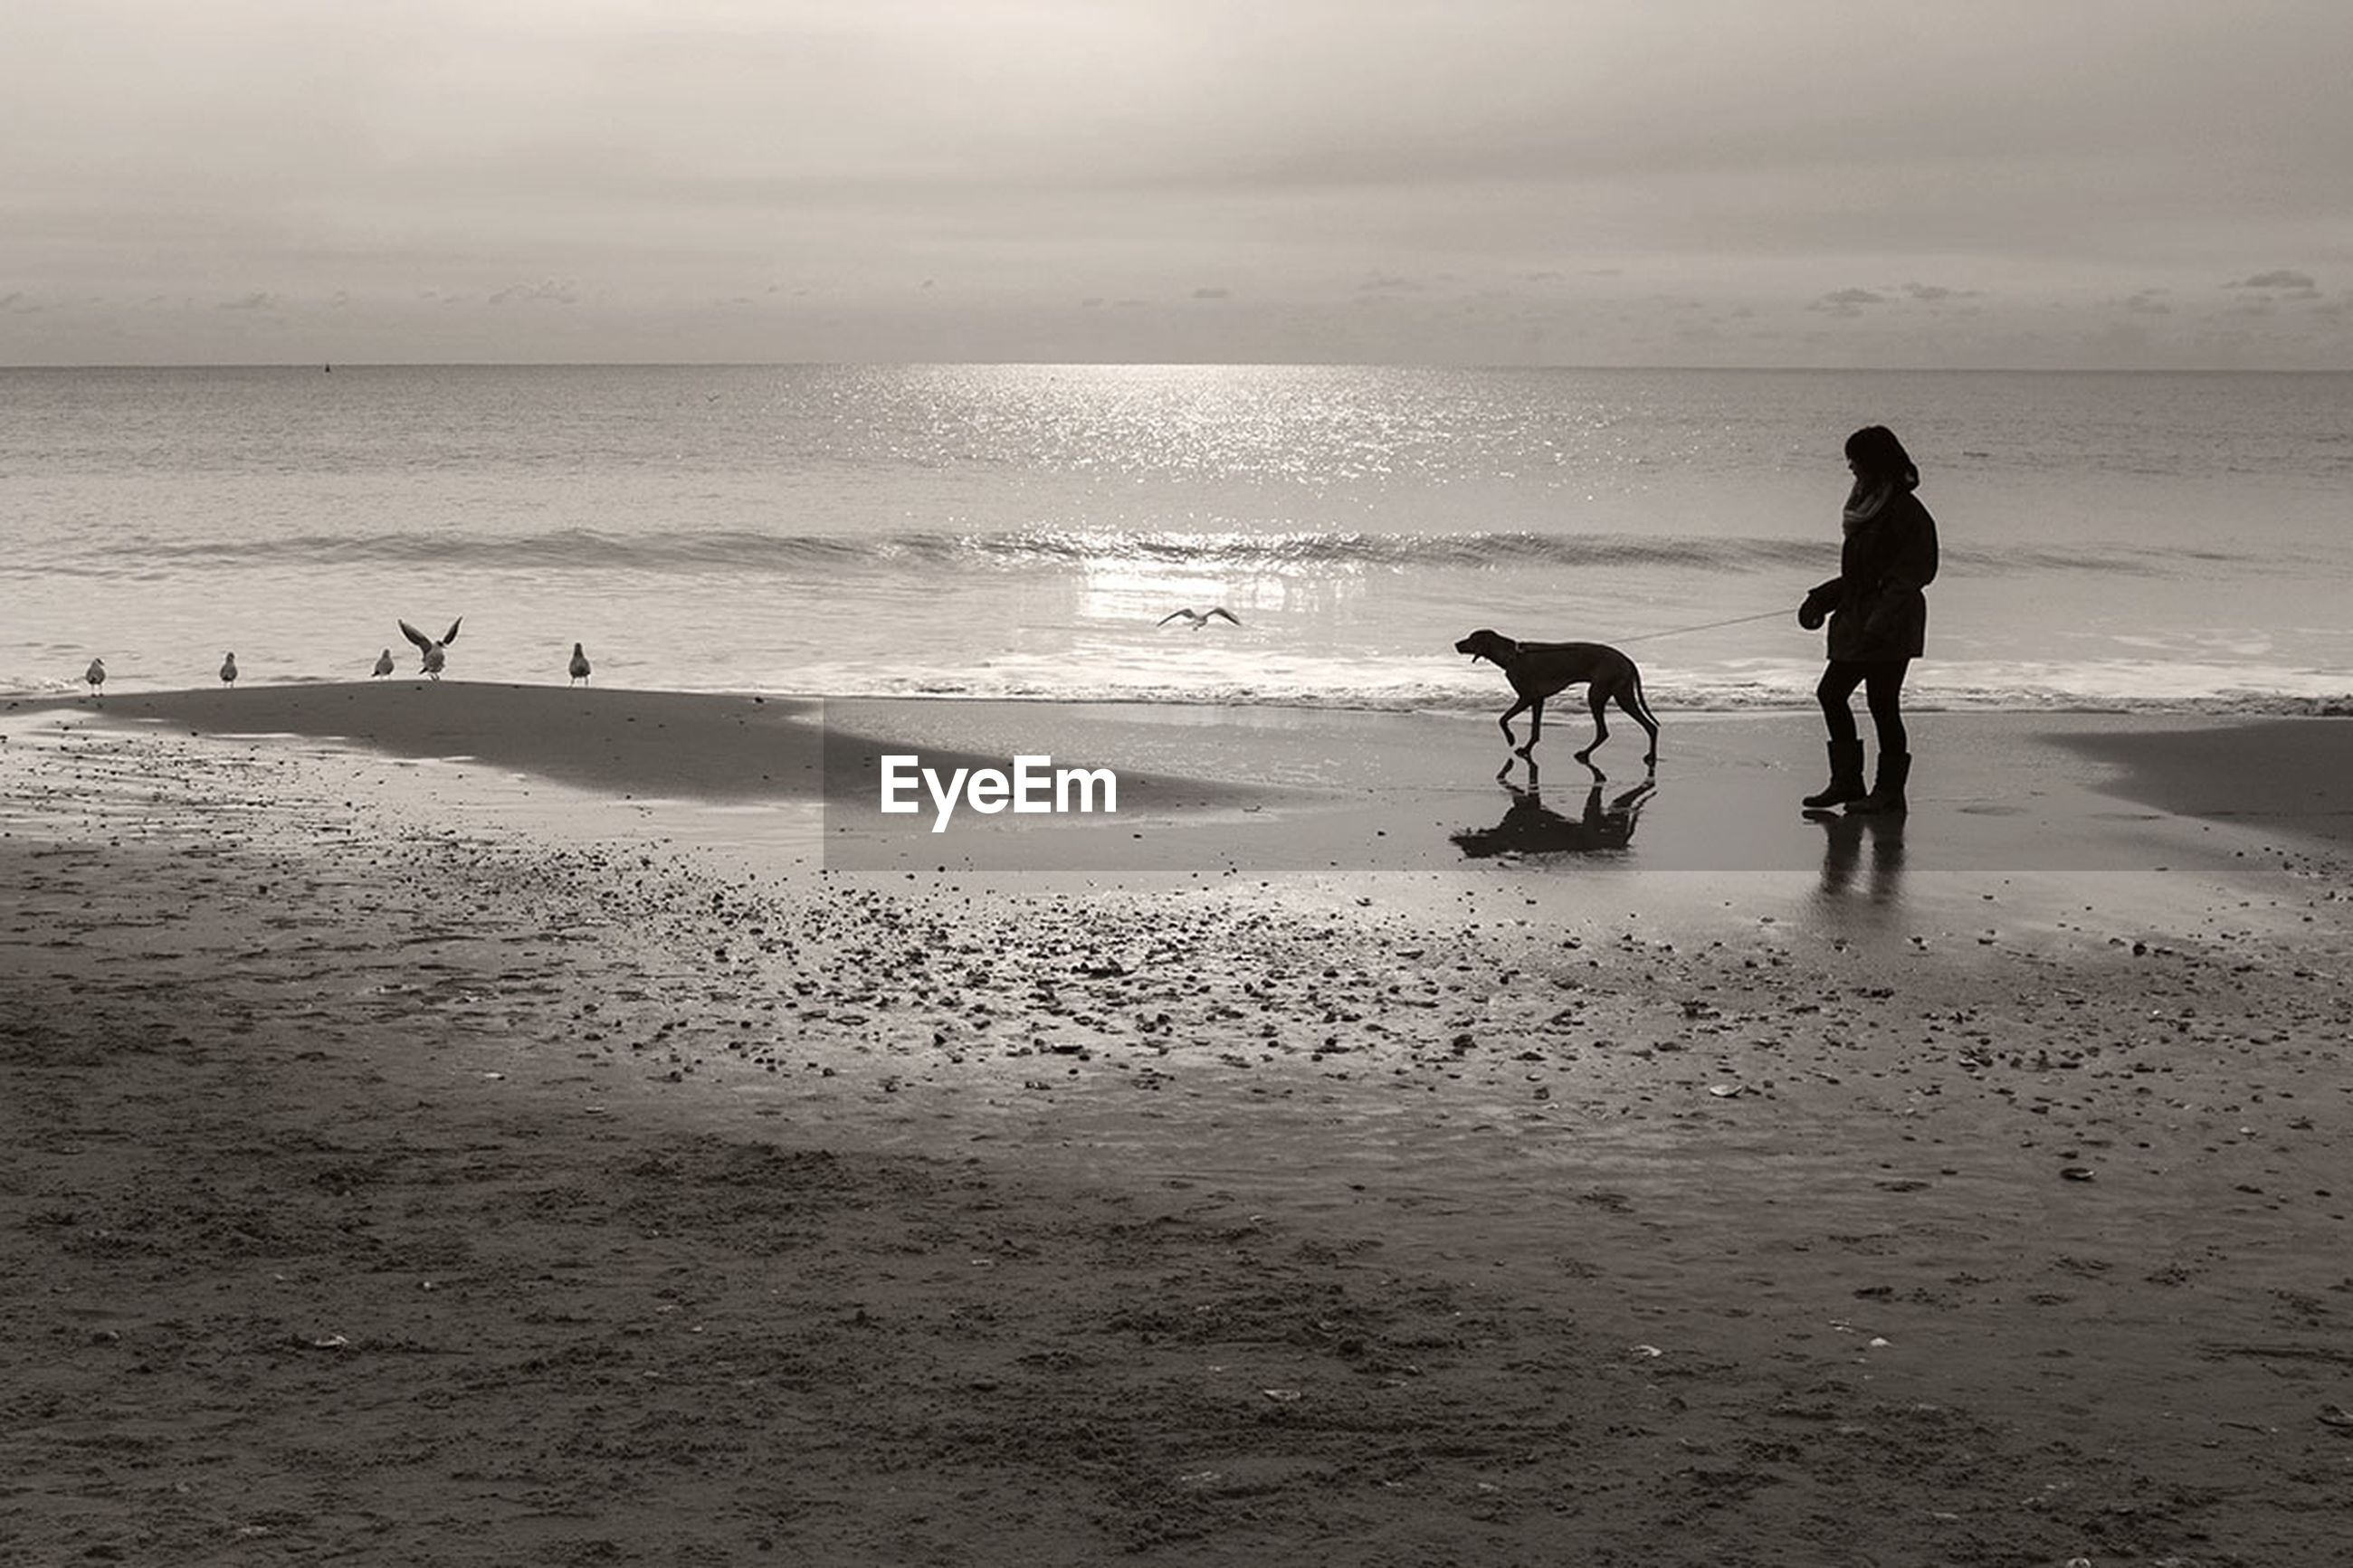 beach, sea, horizon over water, sand, shore, domestic animals, dog, water, pets, sky, mammal, animal themes, leisure activity, men, full length, lifestyles, wave, vacations, one animal